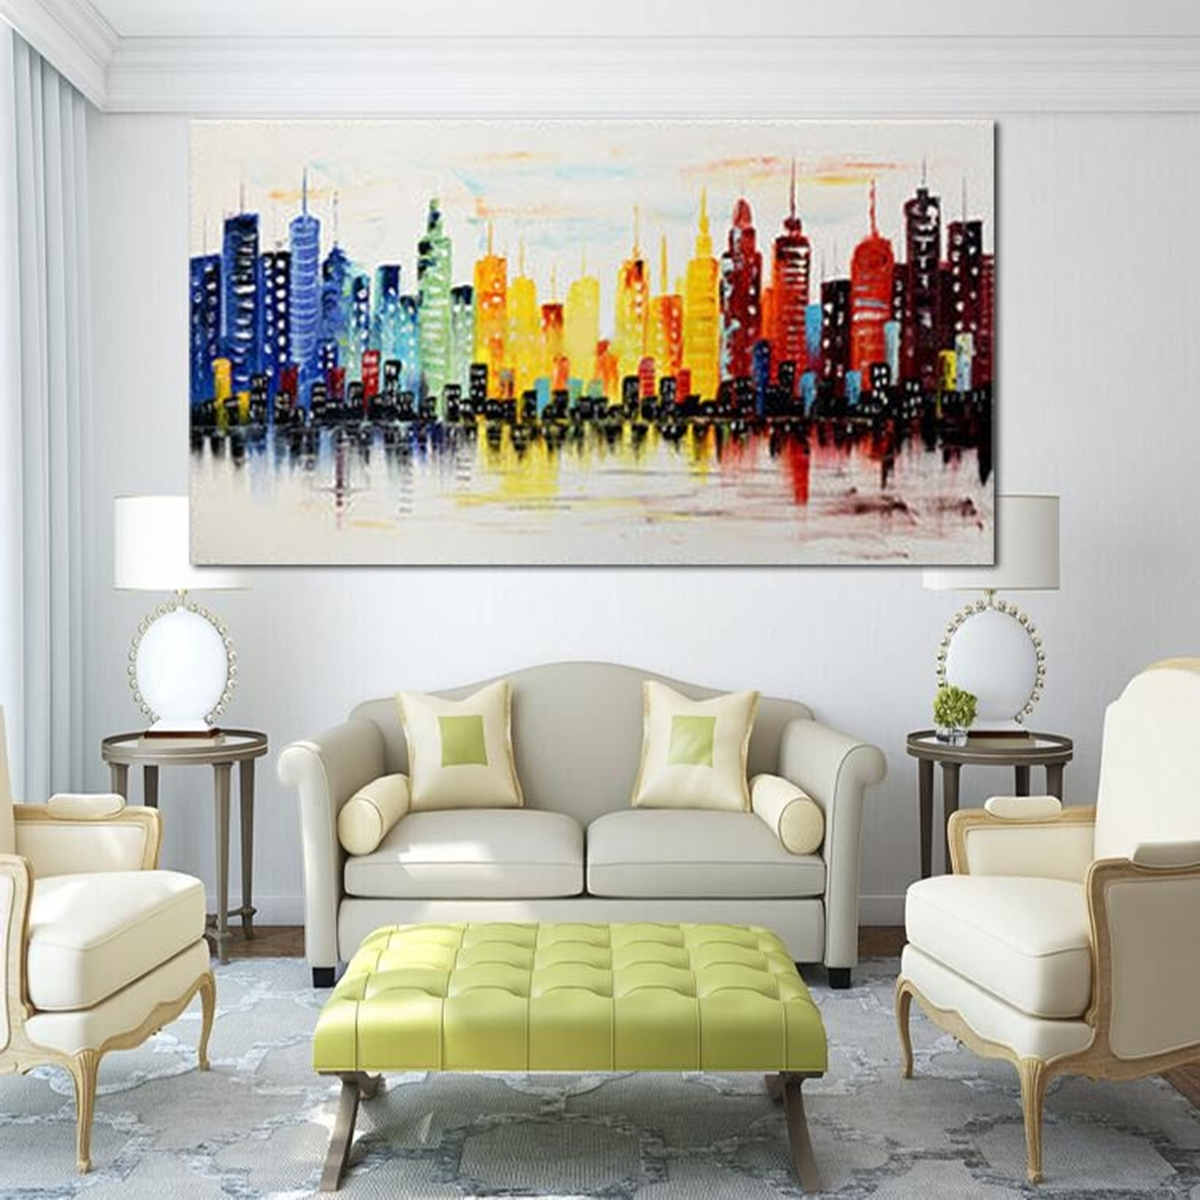 120X60Cm Modern City Canvas Abstract Painting Print Living Room Art Throughout Preferred Living Room Painting Wall Art (View 1 of 15)